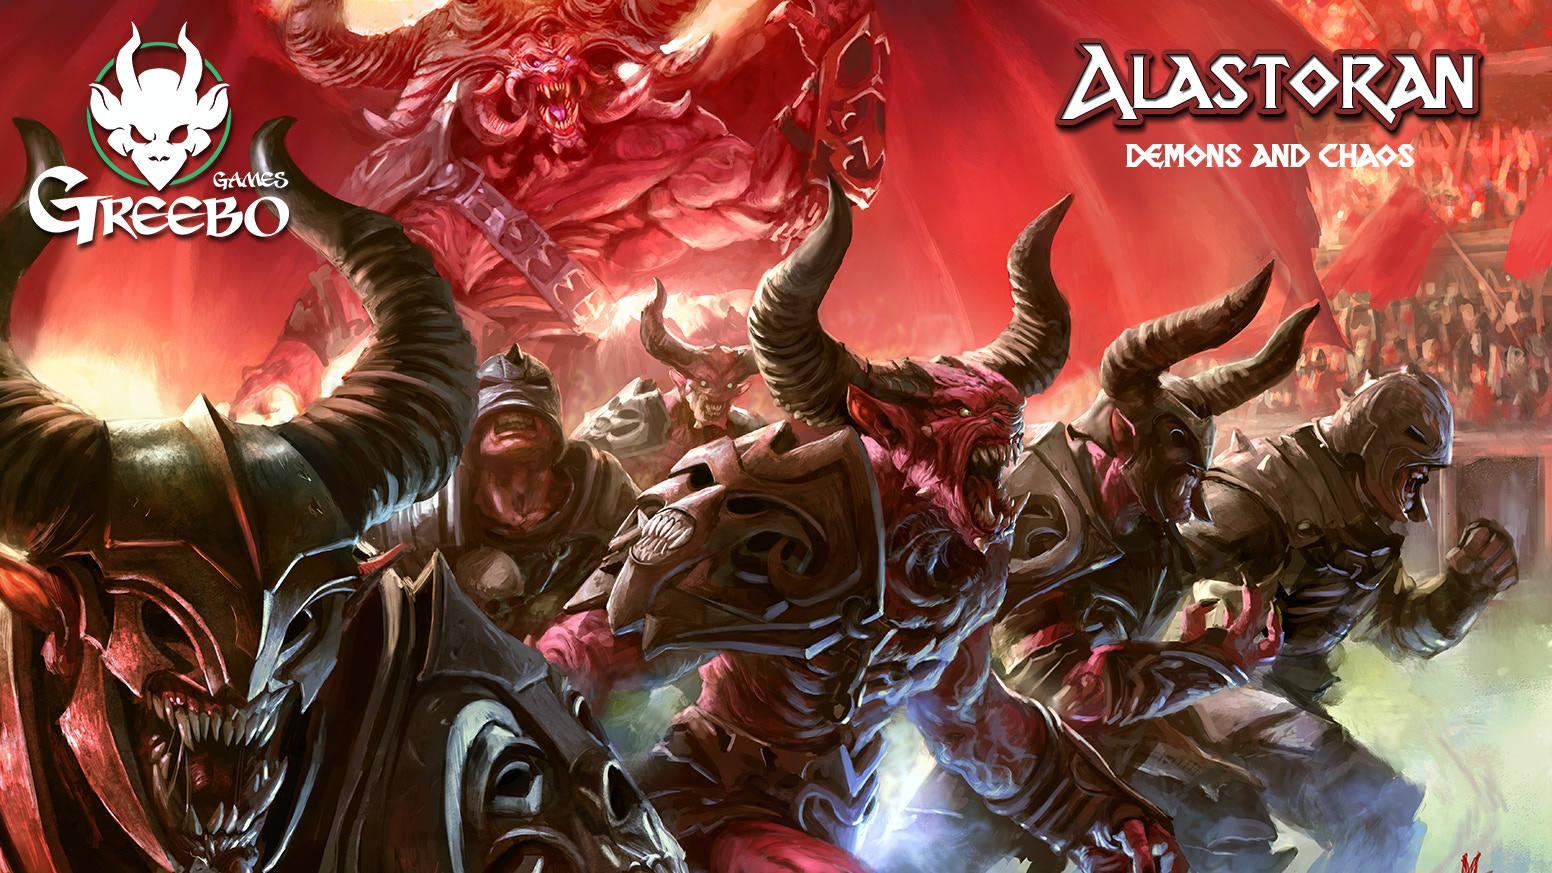 Greebo Games is proud to present you, Alastoran! More than 80 models in 32mm: all kind of chaos creatures are ready to play and win!